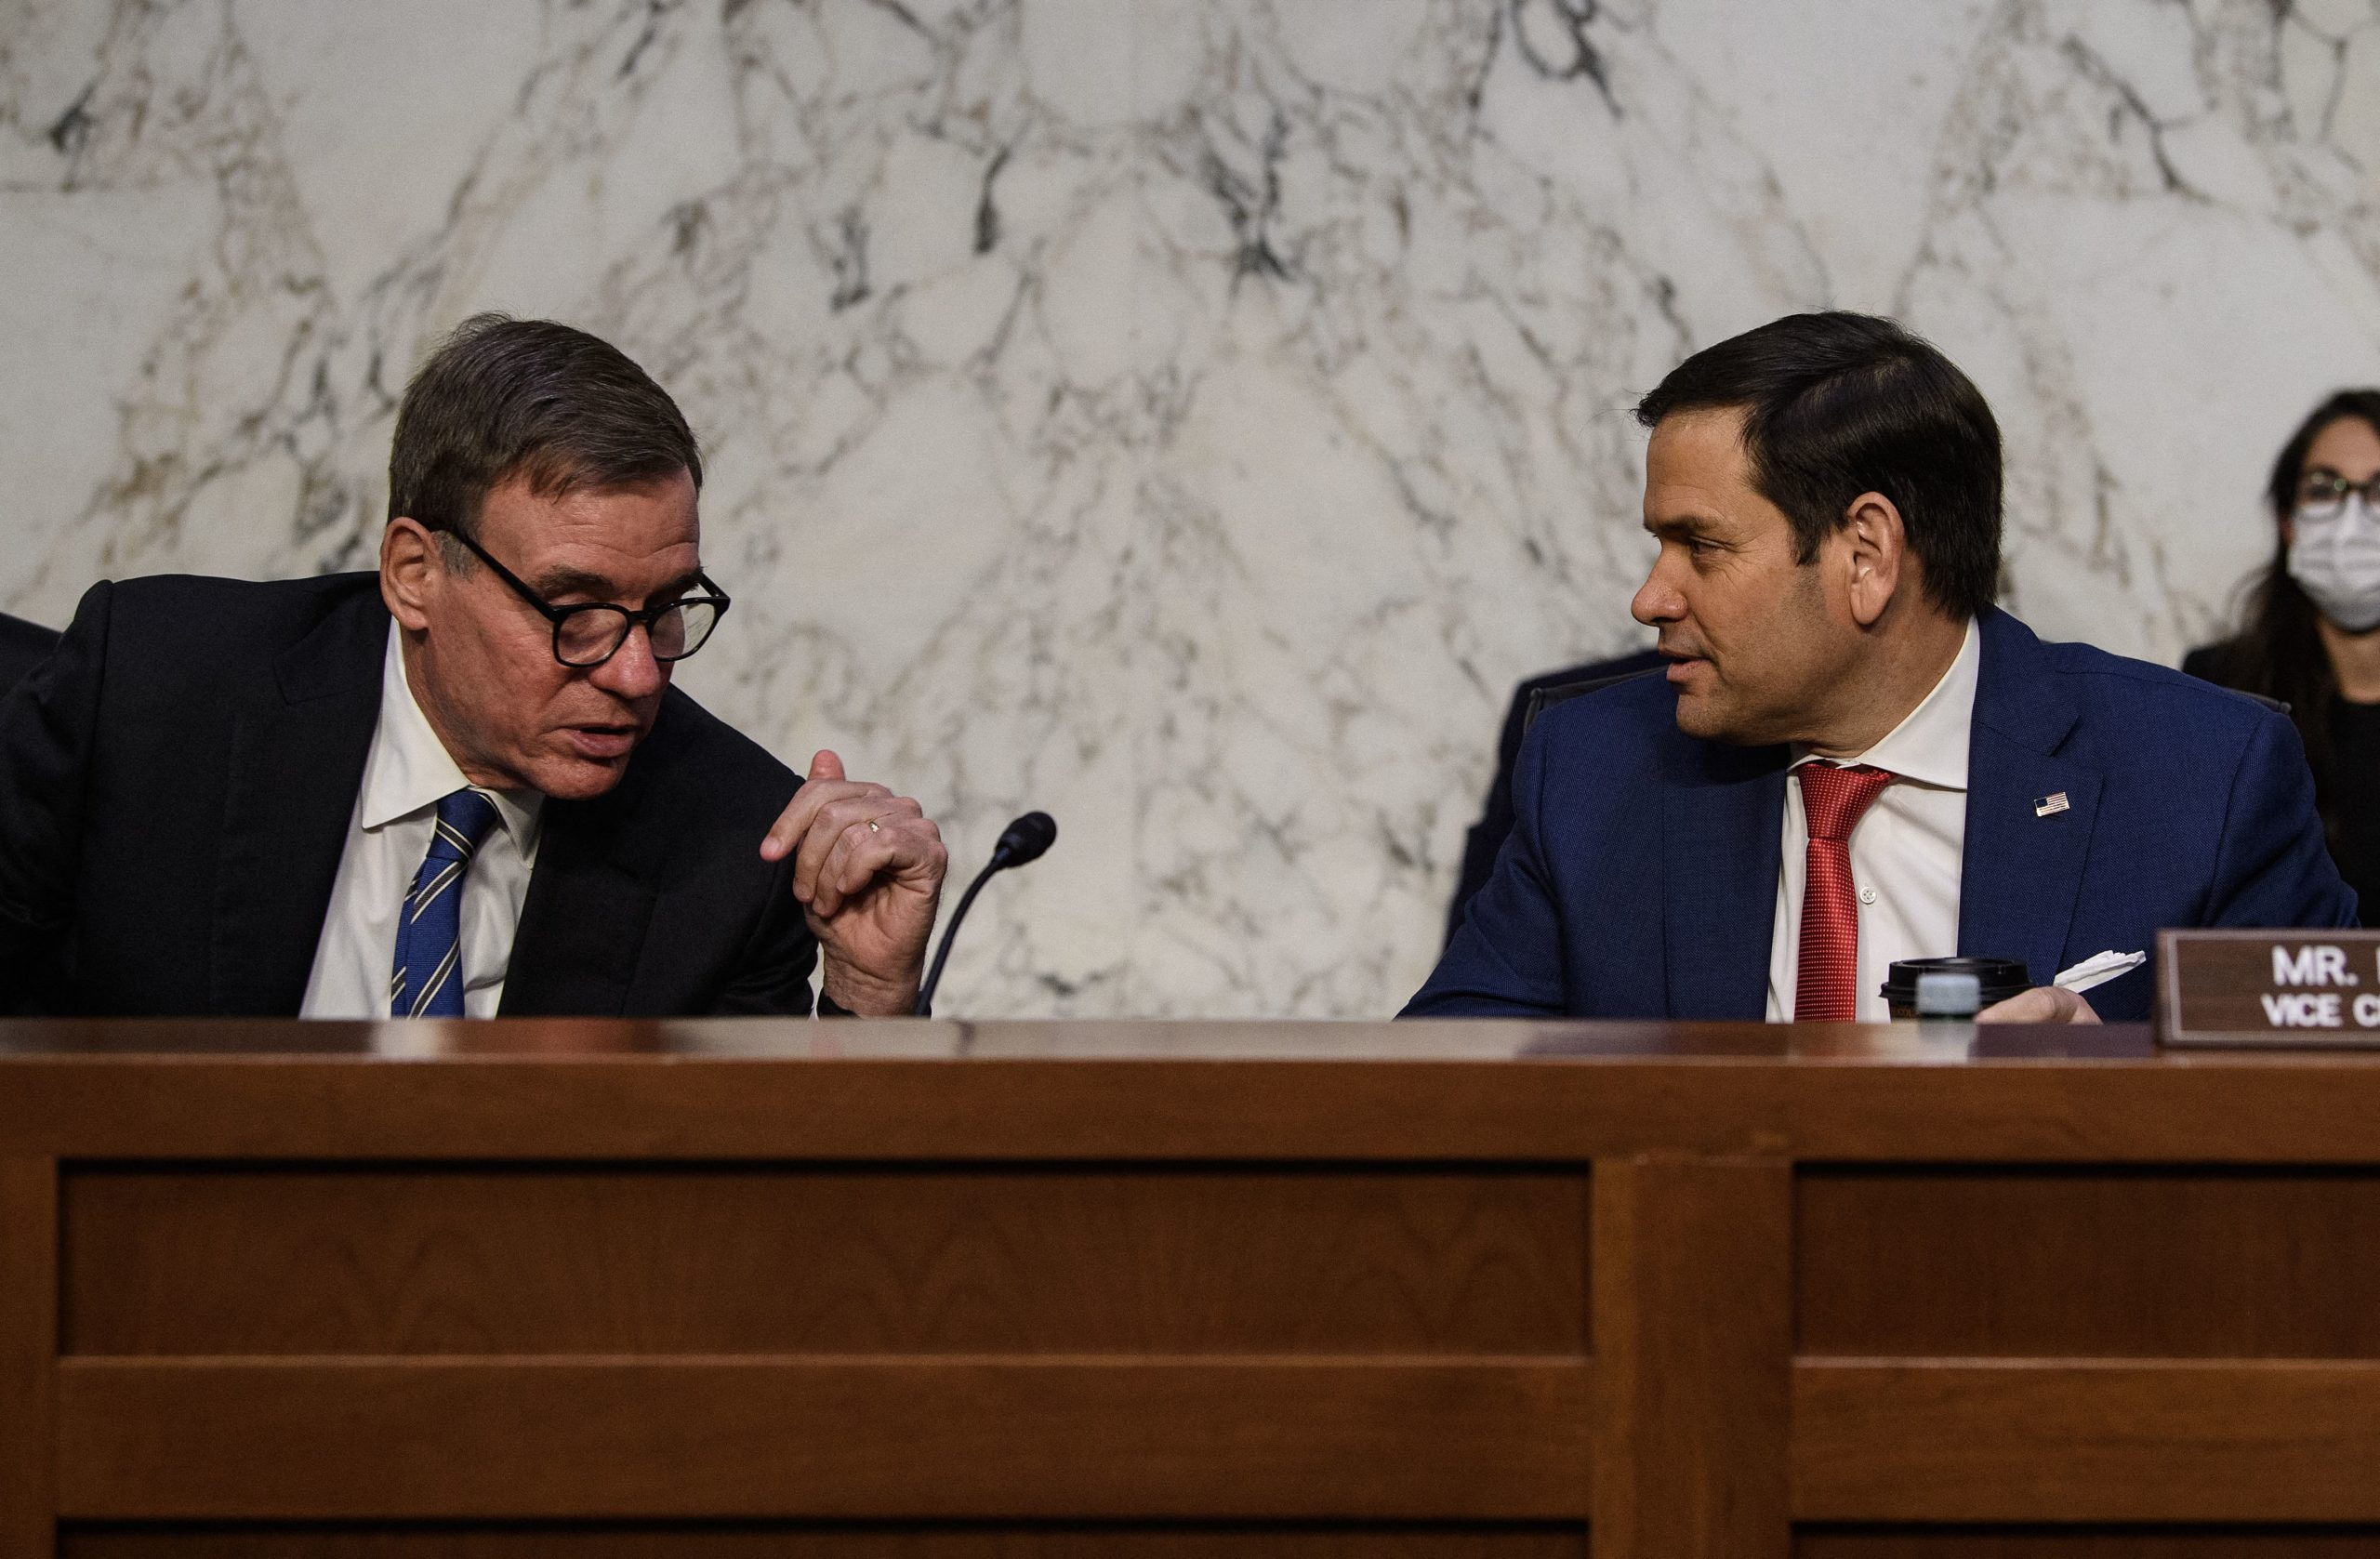 US Democratric Senator from Virginia Mark Warner (L) speaks with Republican Senator Marco Rubio before a hearing of the Senate Intelligence Select Committee on the threats to national security from China on Capitol Hill in Washington, DC, on August 4, 2021. (Photo by Nicholas Kamm / AFP) (Photo by NICHOLAS KAMM/AFP via Getty Images)